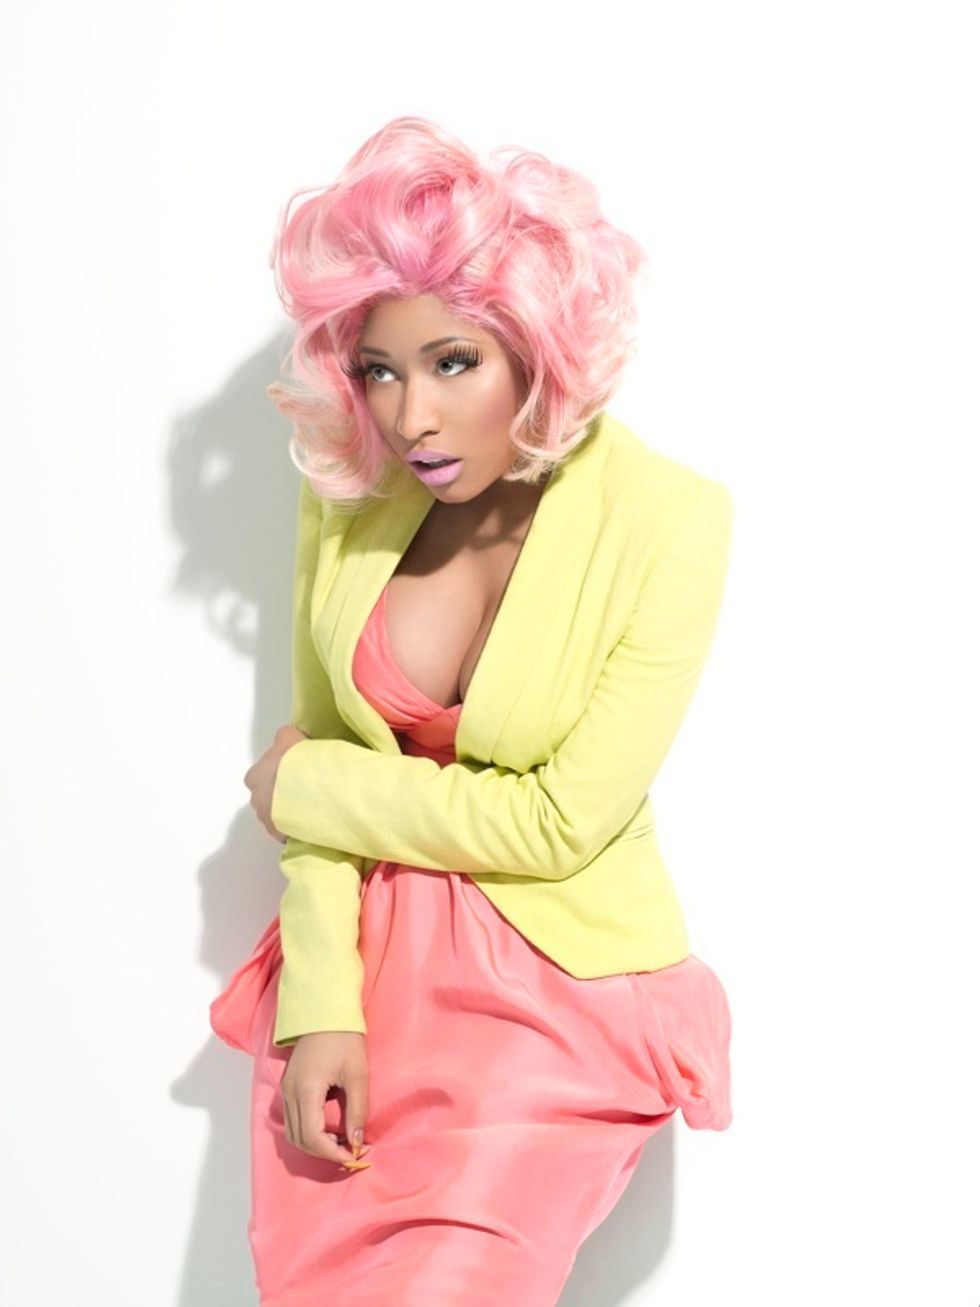 Nicki Minaj Sets the Record Straight With Safaree Samuels